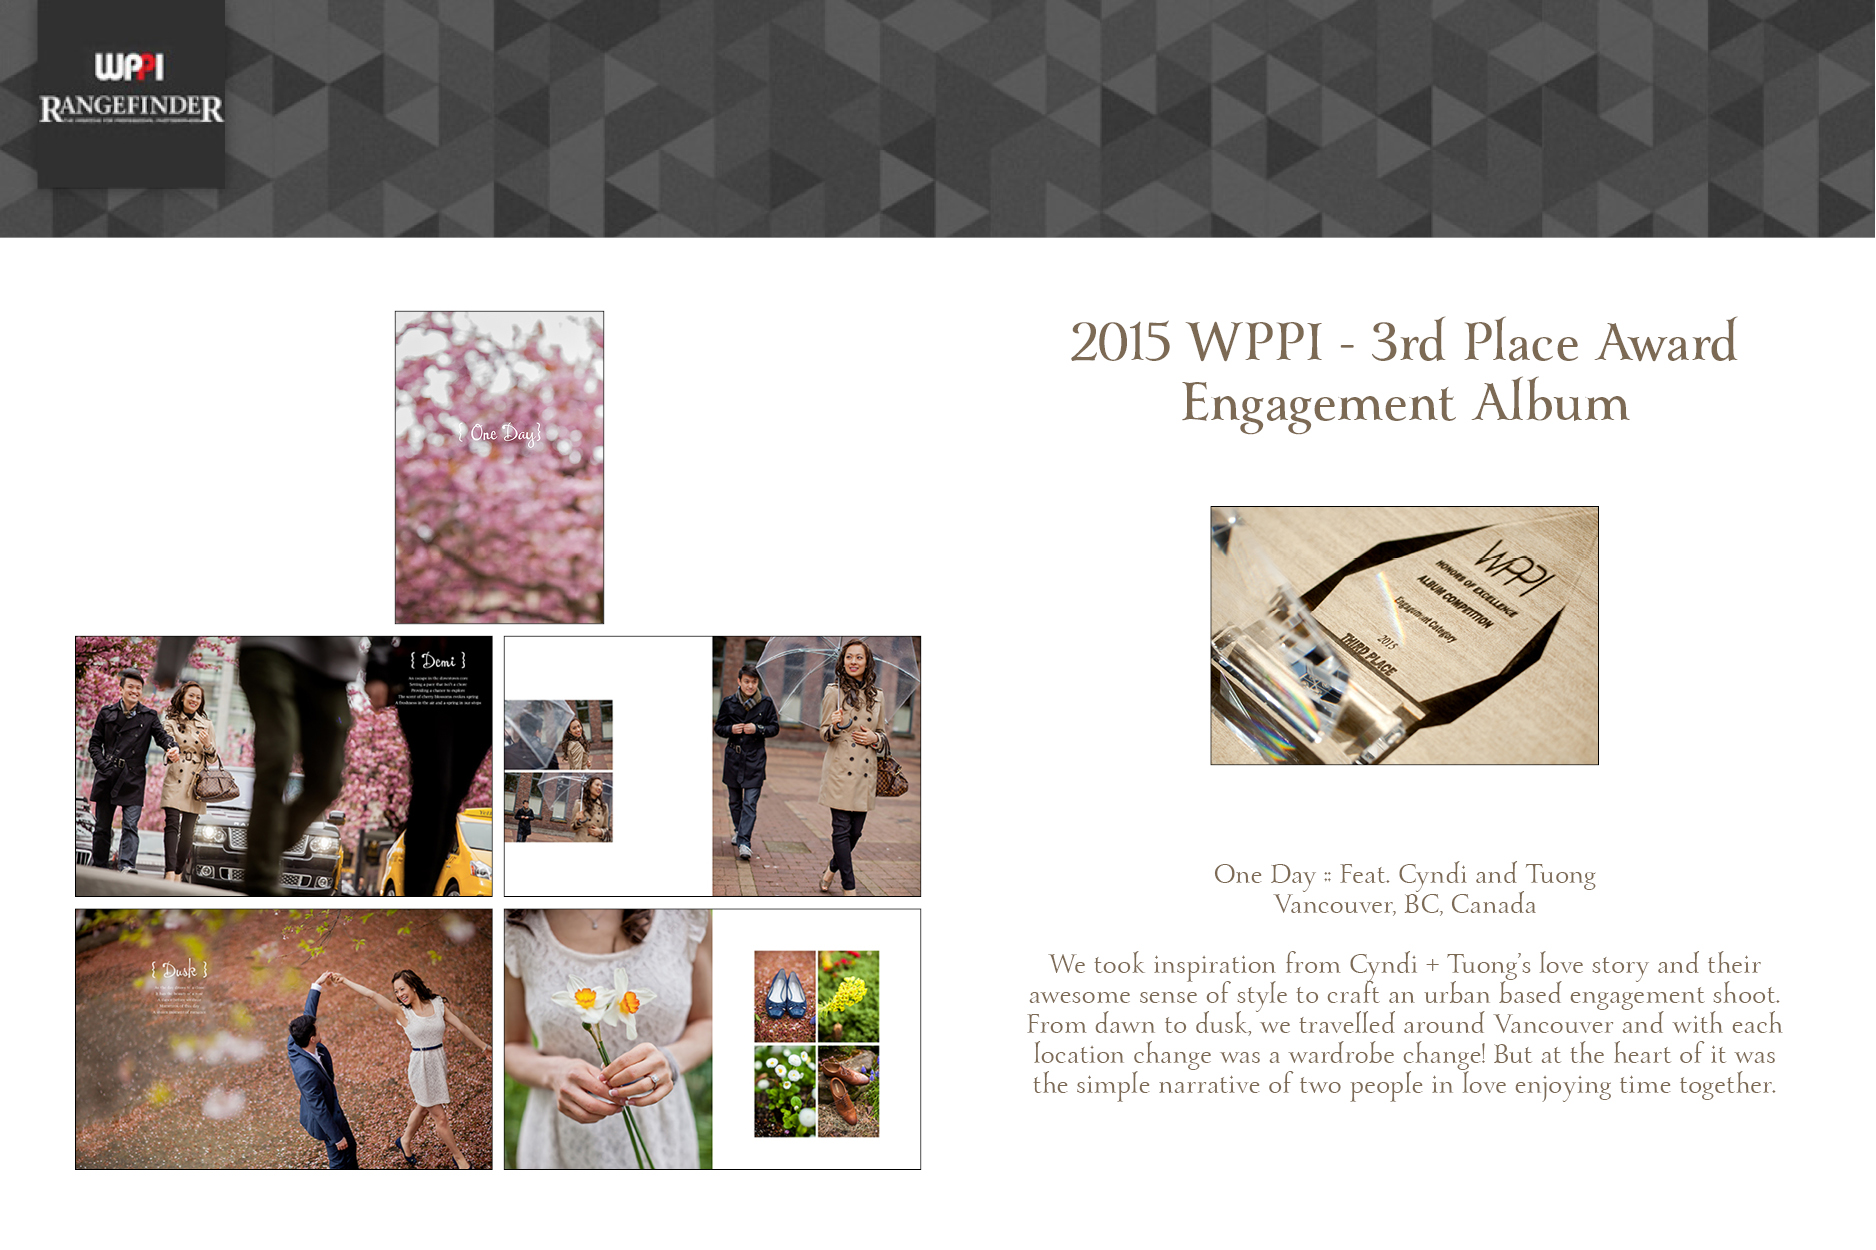 WPPI 3rd Place Album Award 2015